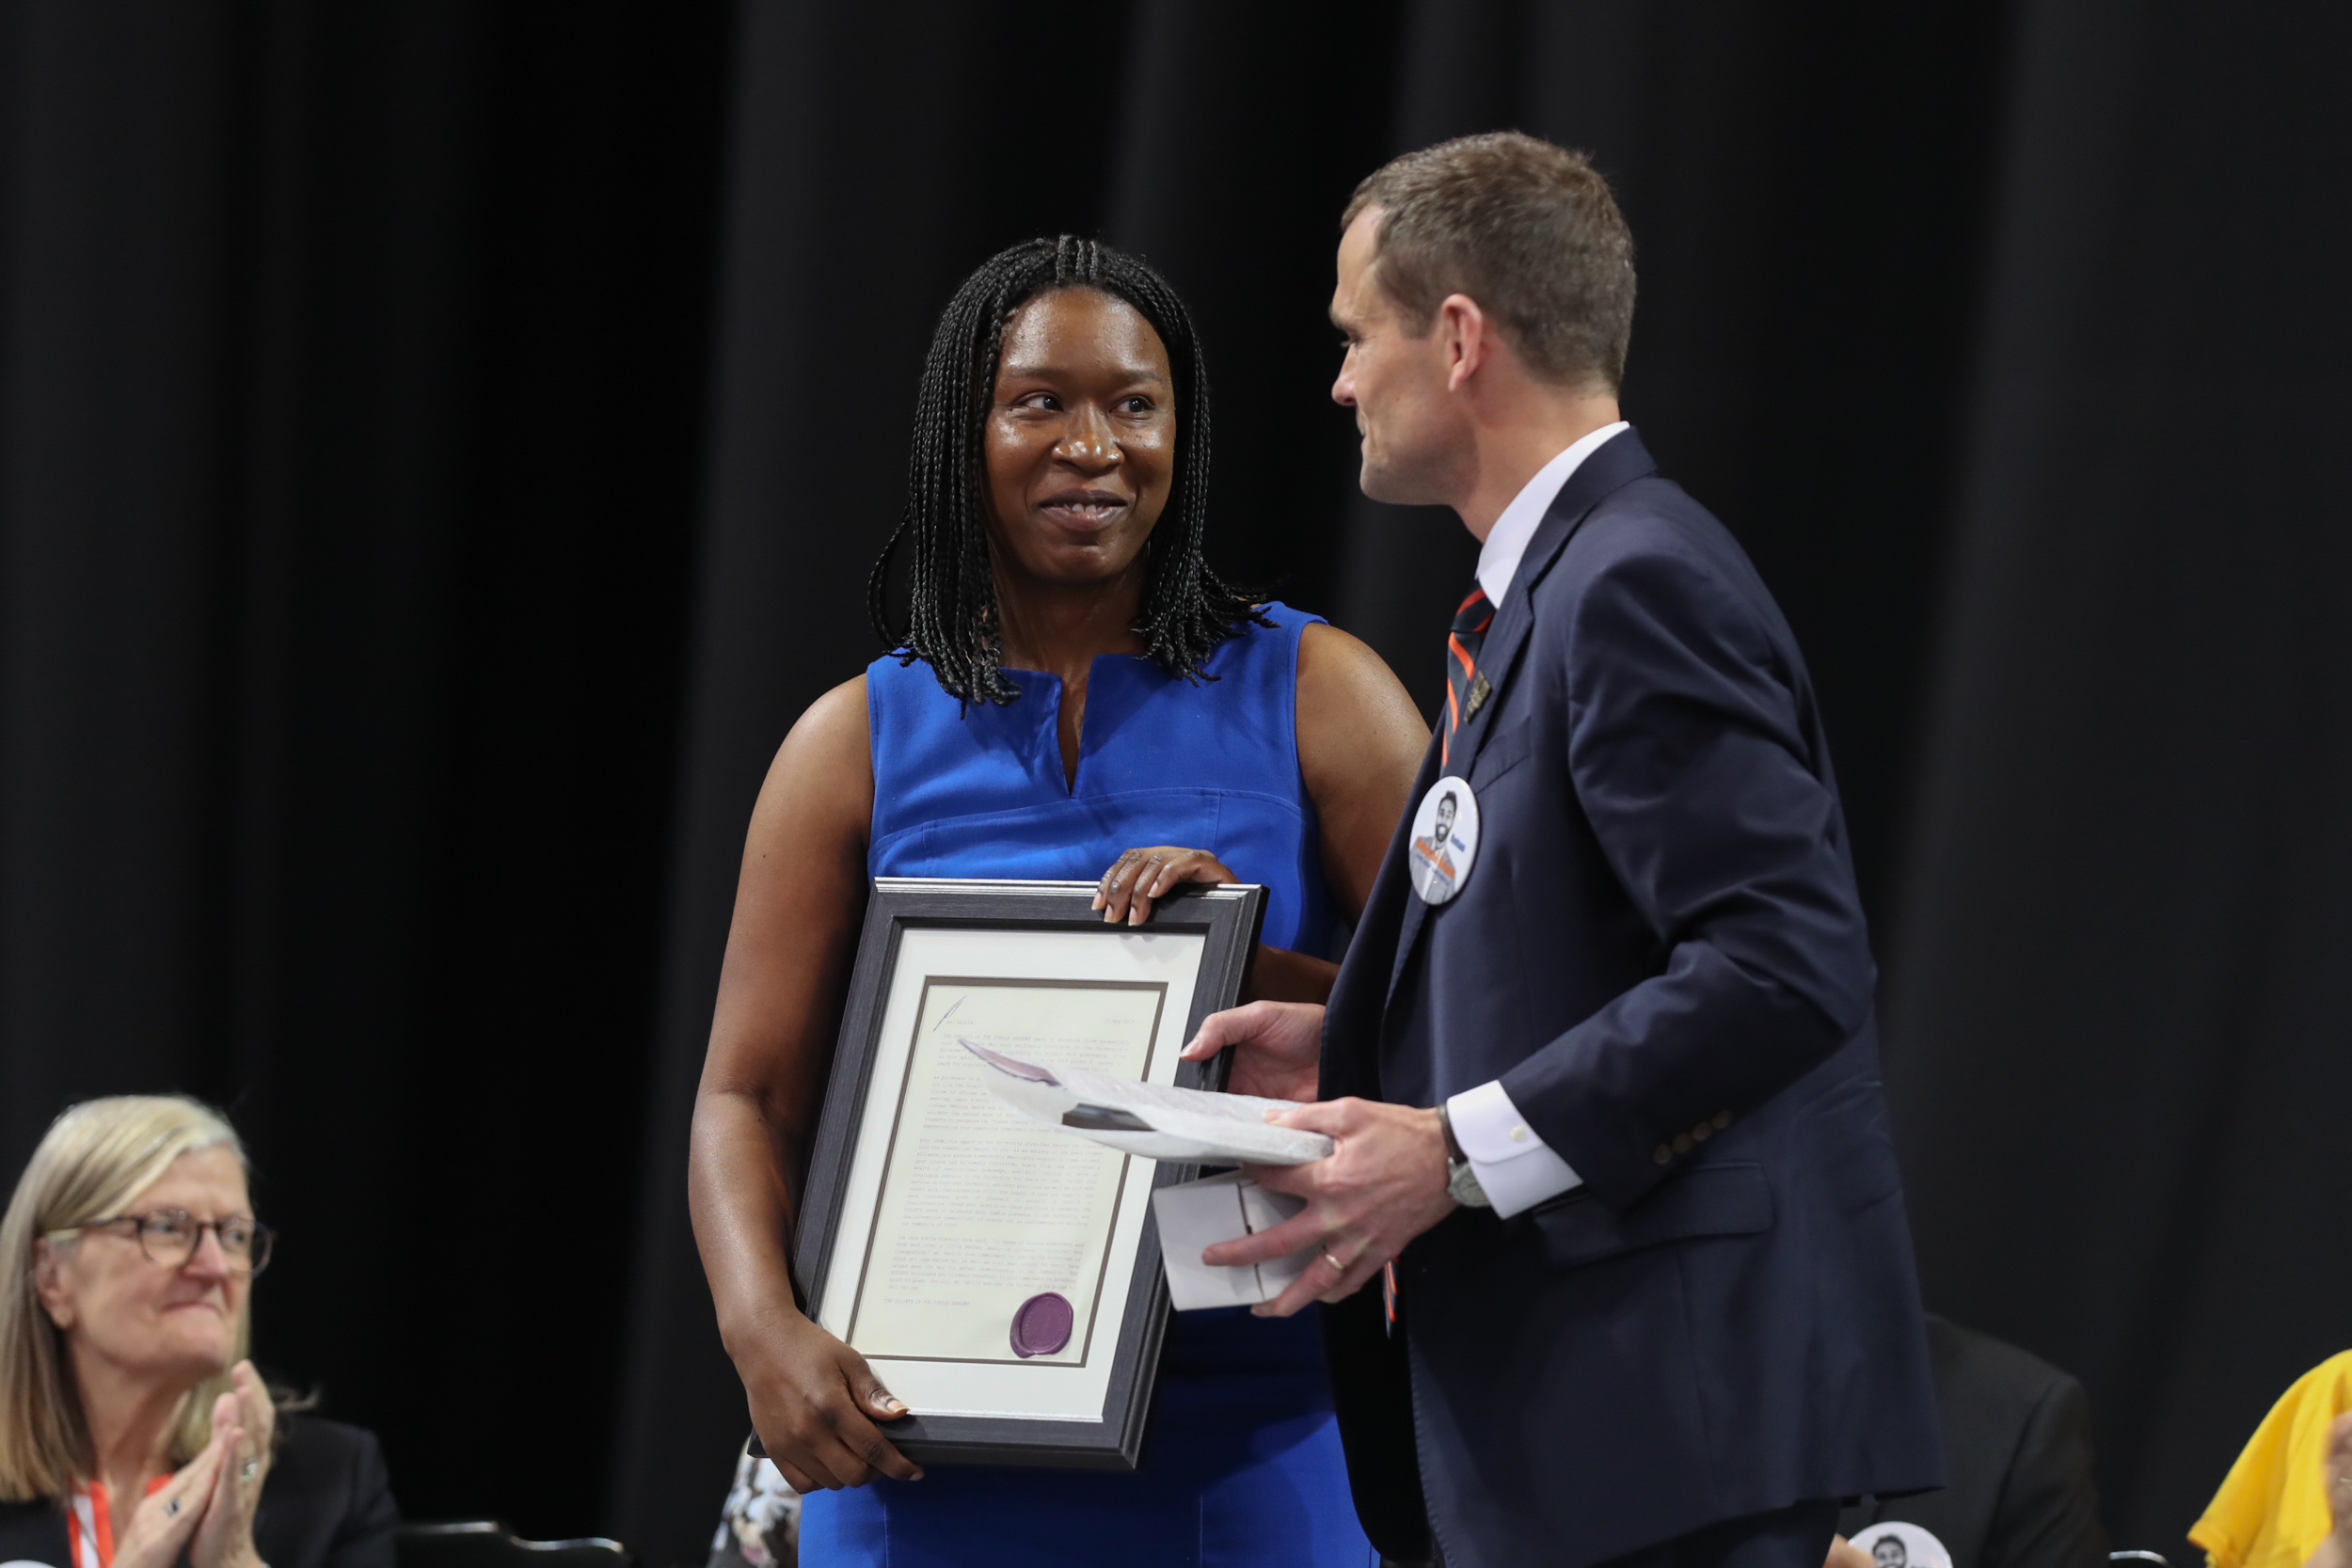 The Society of the Purple Shadows, represented by UVA President Jim Ryan, awarded its Gordon F. Rainey Jr. Award to Claudrena Harold, professor of African American and African Studies and History.